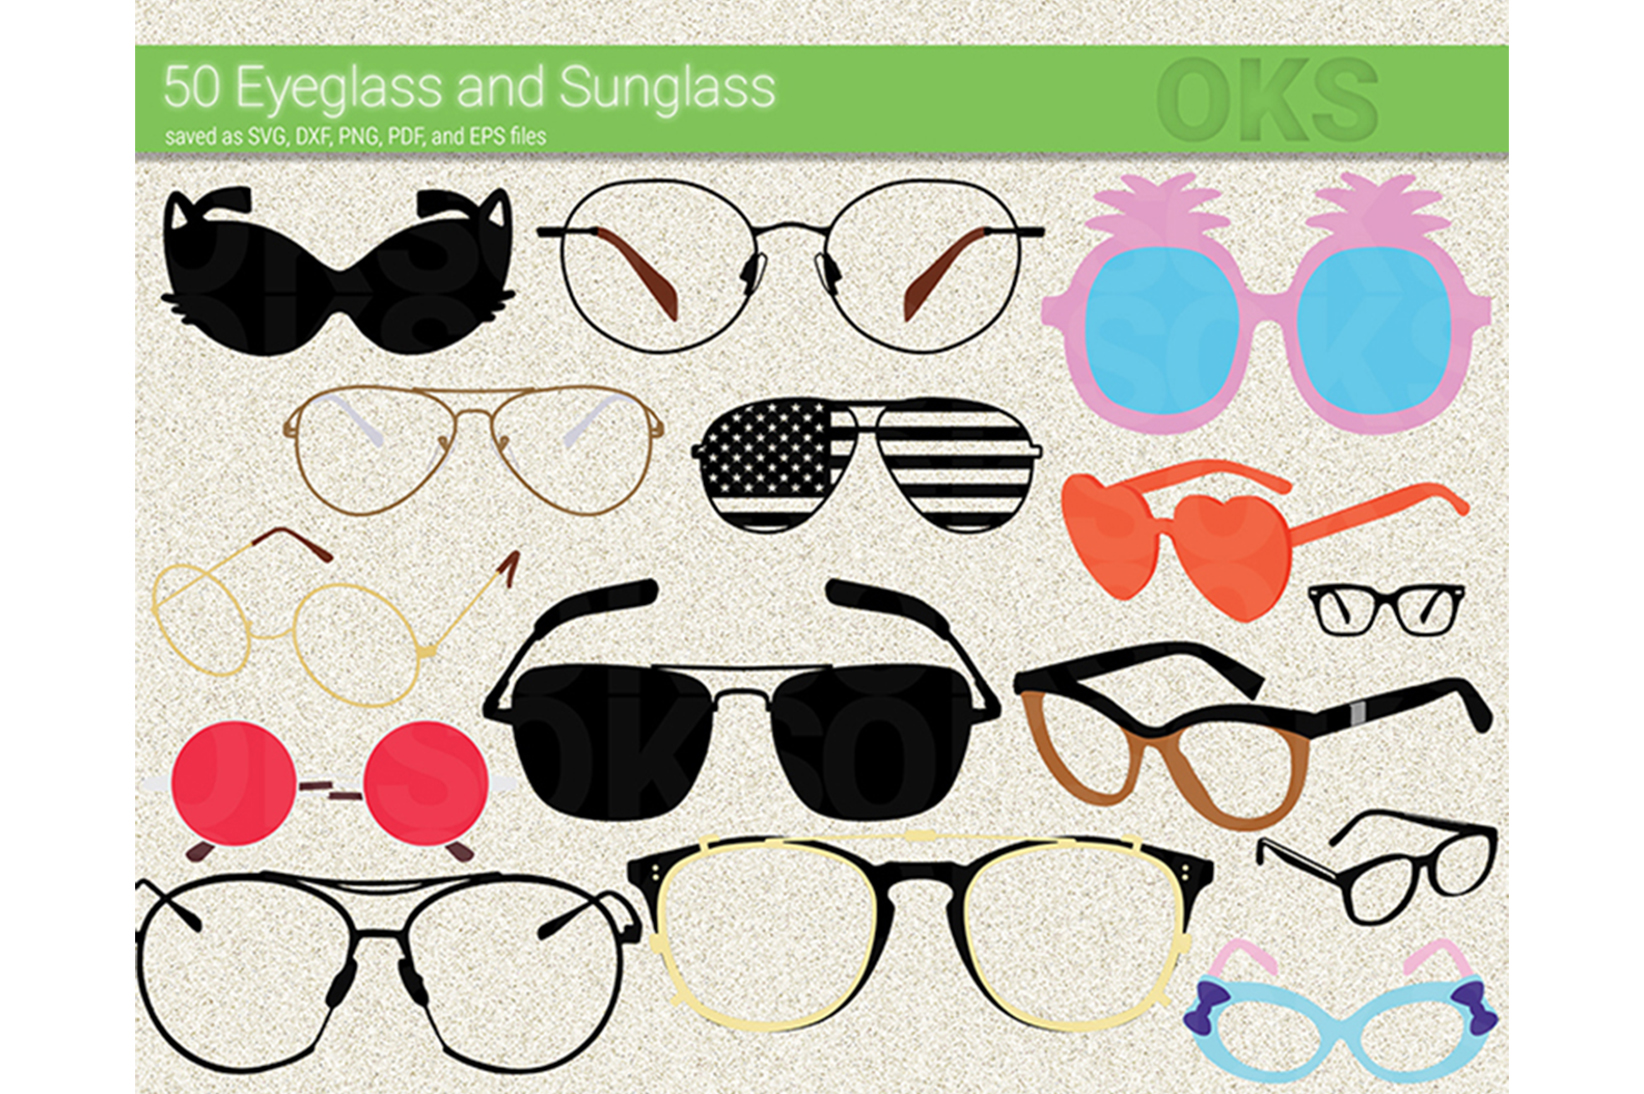 Download Free Eyeglasses Sunglasses Vector Graphic By Crafteroks Creative for Cricut Explore, Silhouette and other cutting machines.